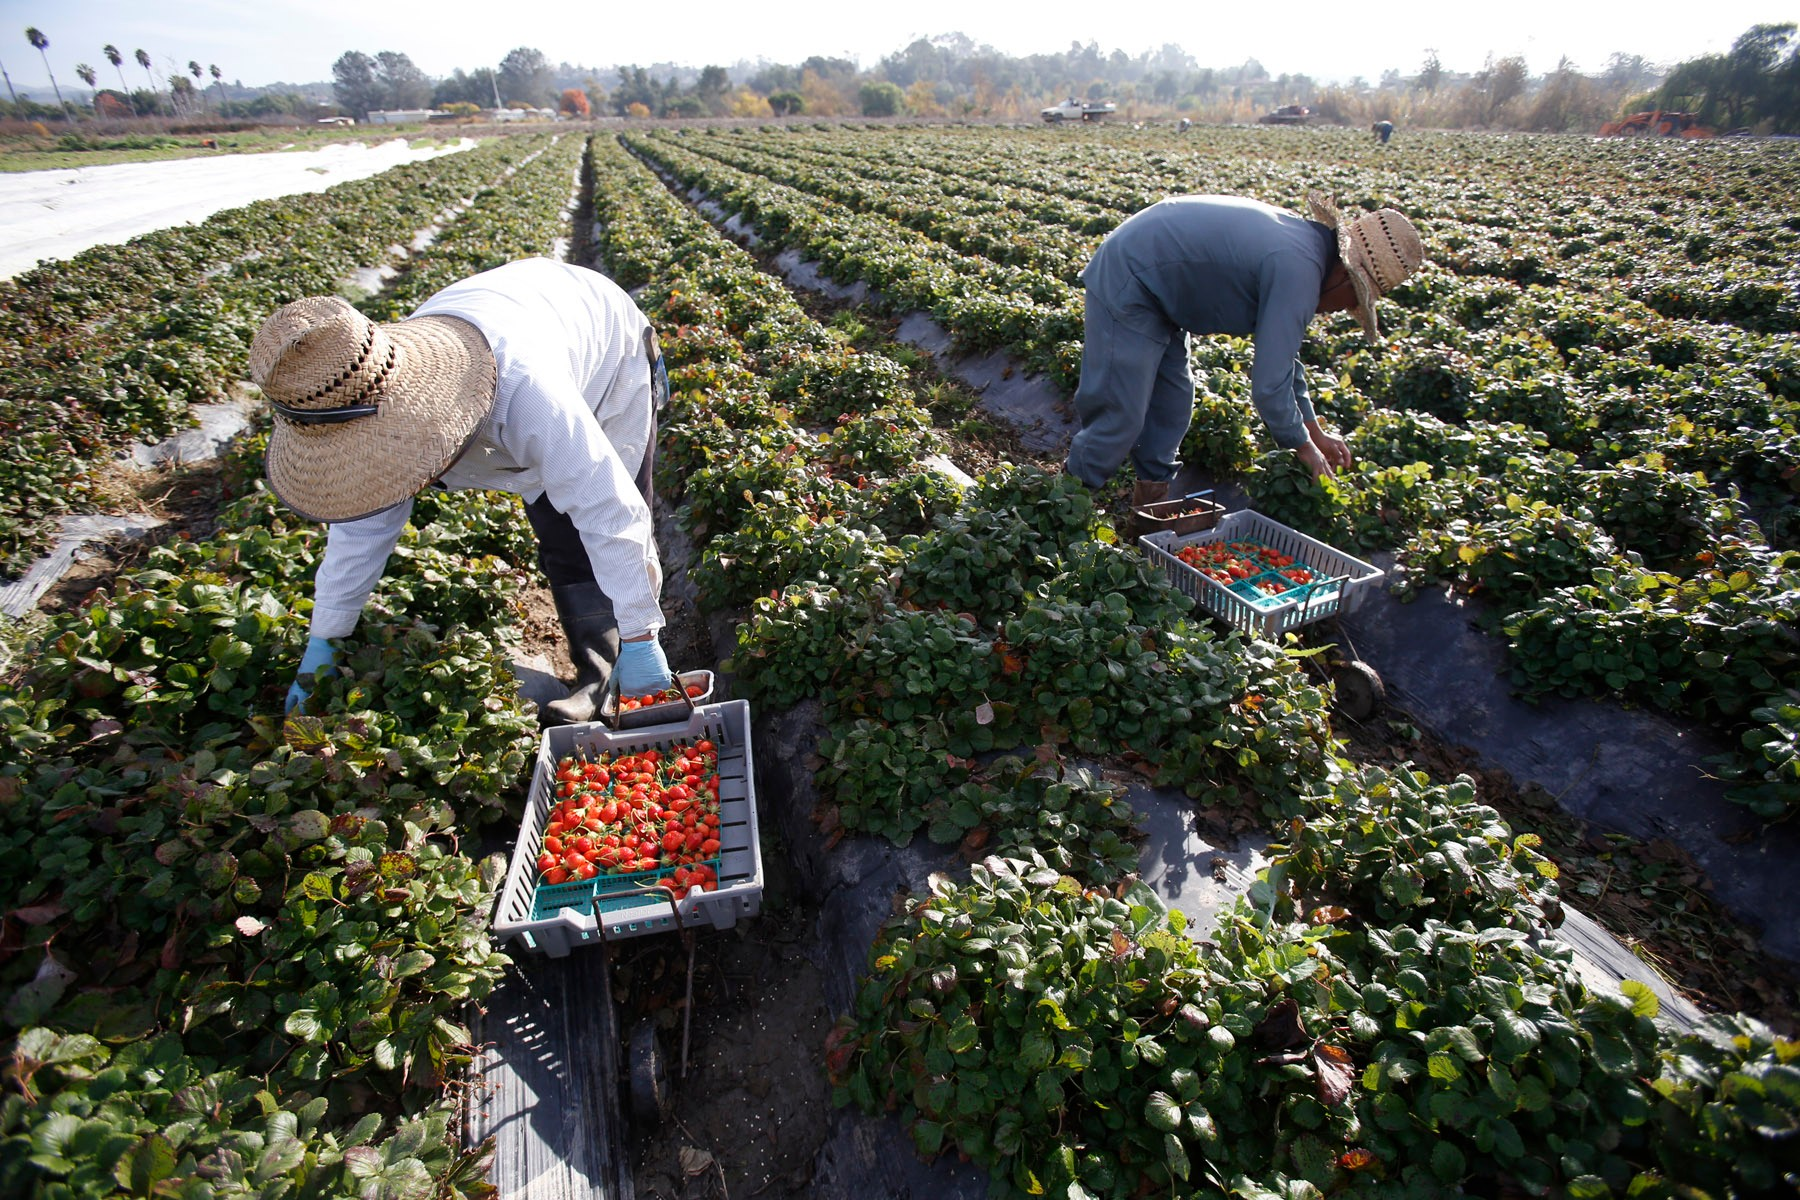 San Diego California, USA, December 13th 2016: | Chino Farms located in Rancho Santa. The farm is recognize and publicize for the high quality produce. Workers picking strawberries (Mara des Bois). | (Alejandro Tamayo)